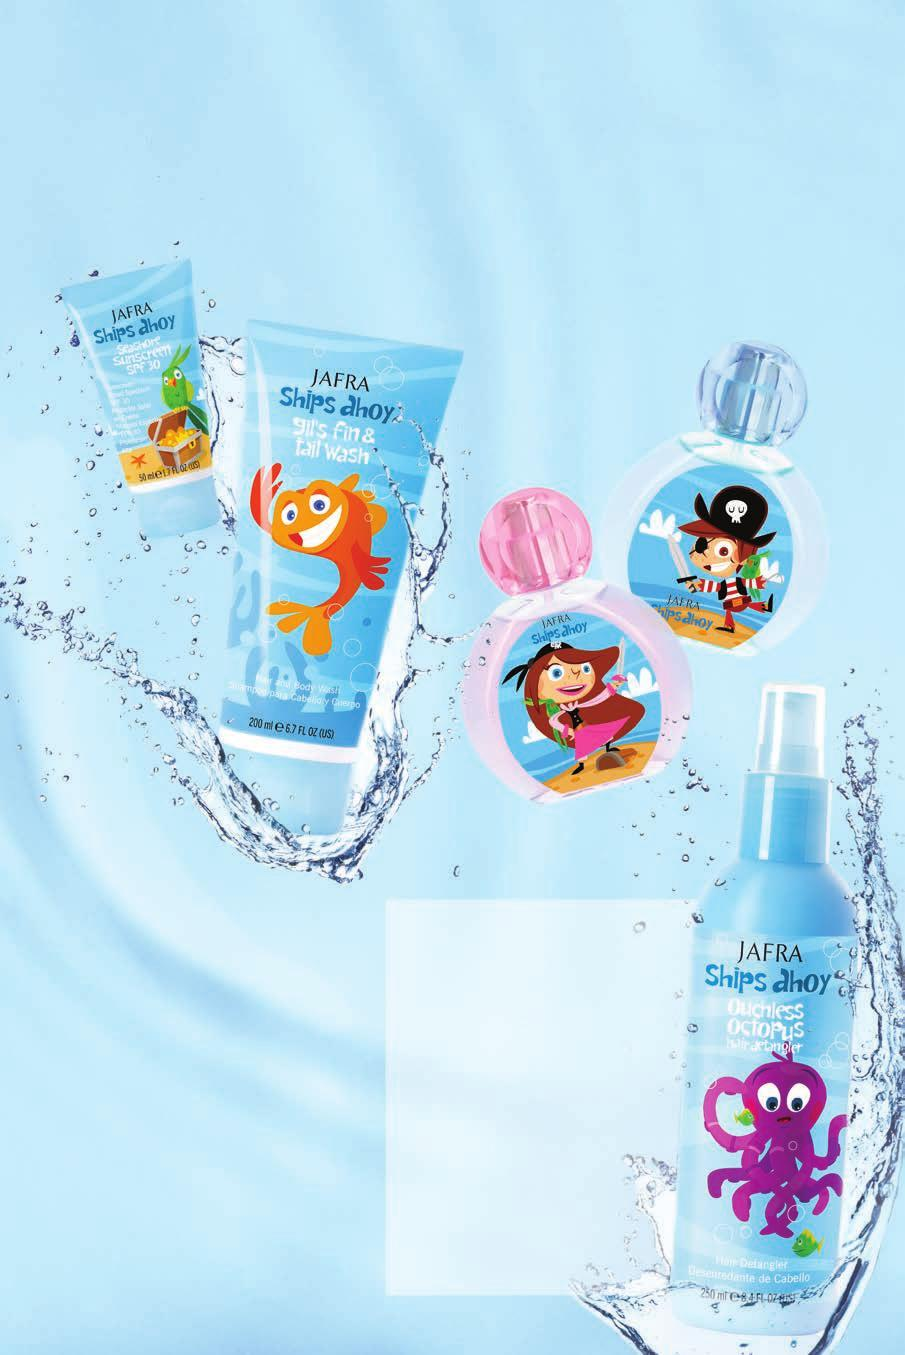 Encourage adventure Bath time just got fun and